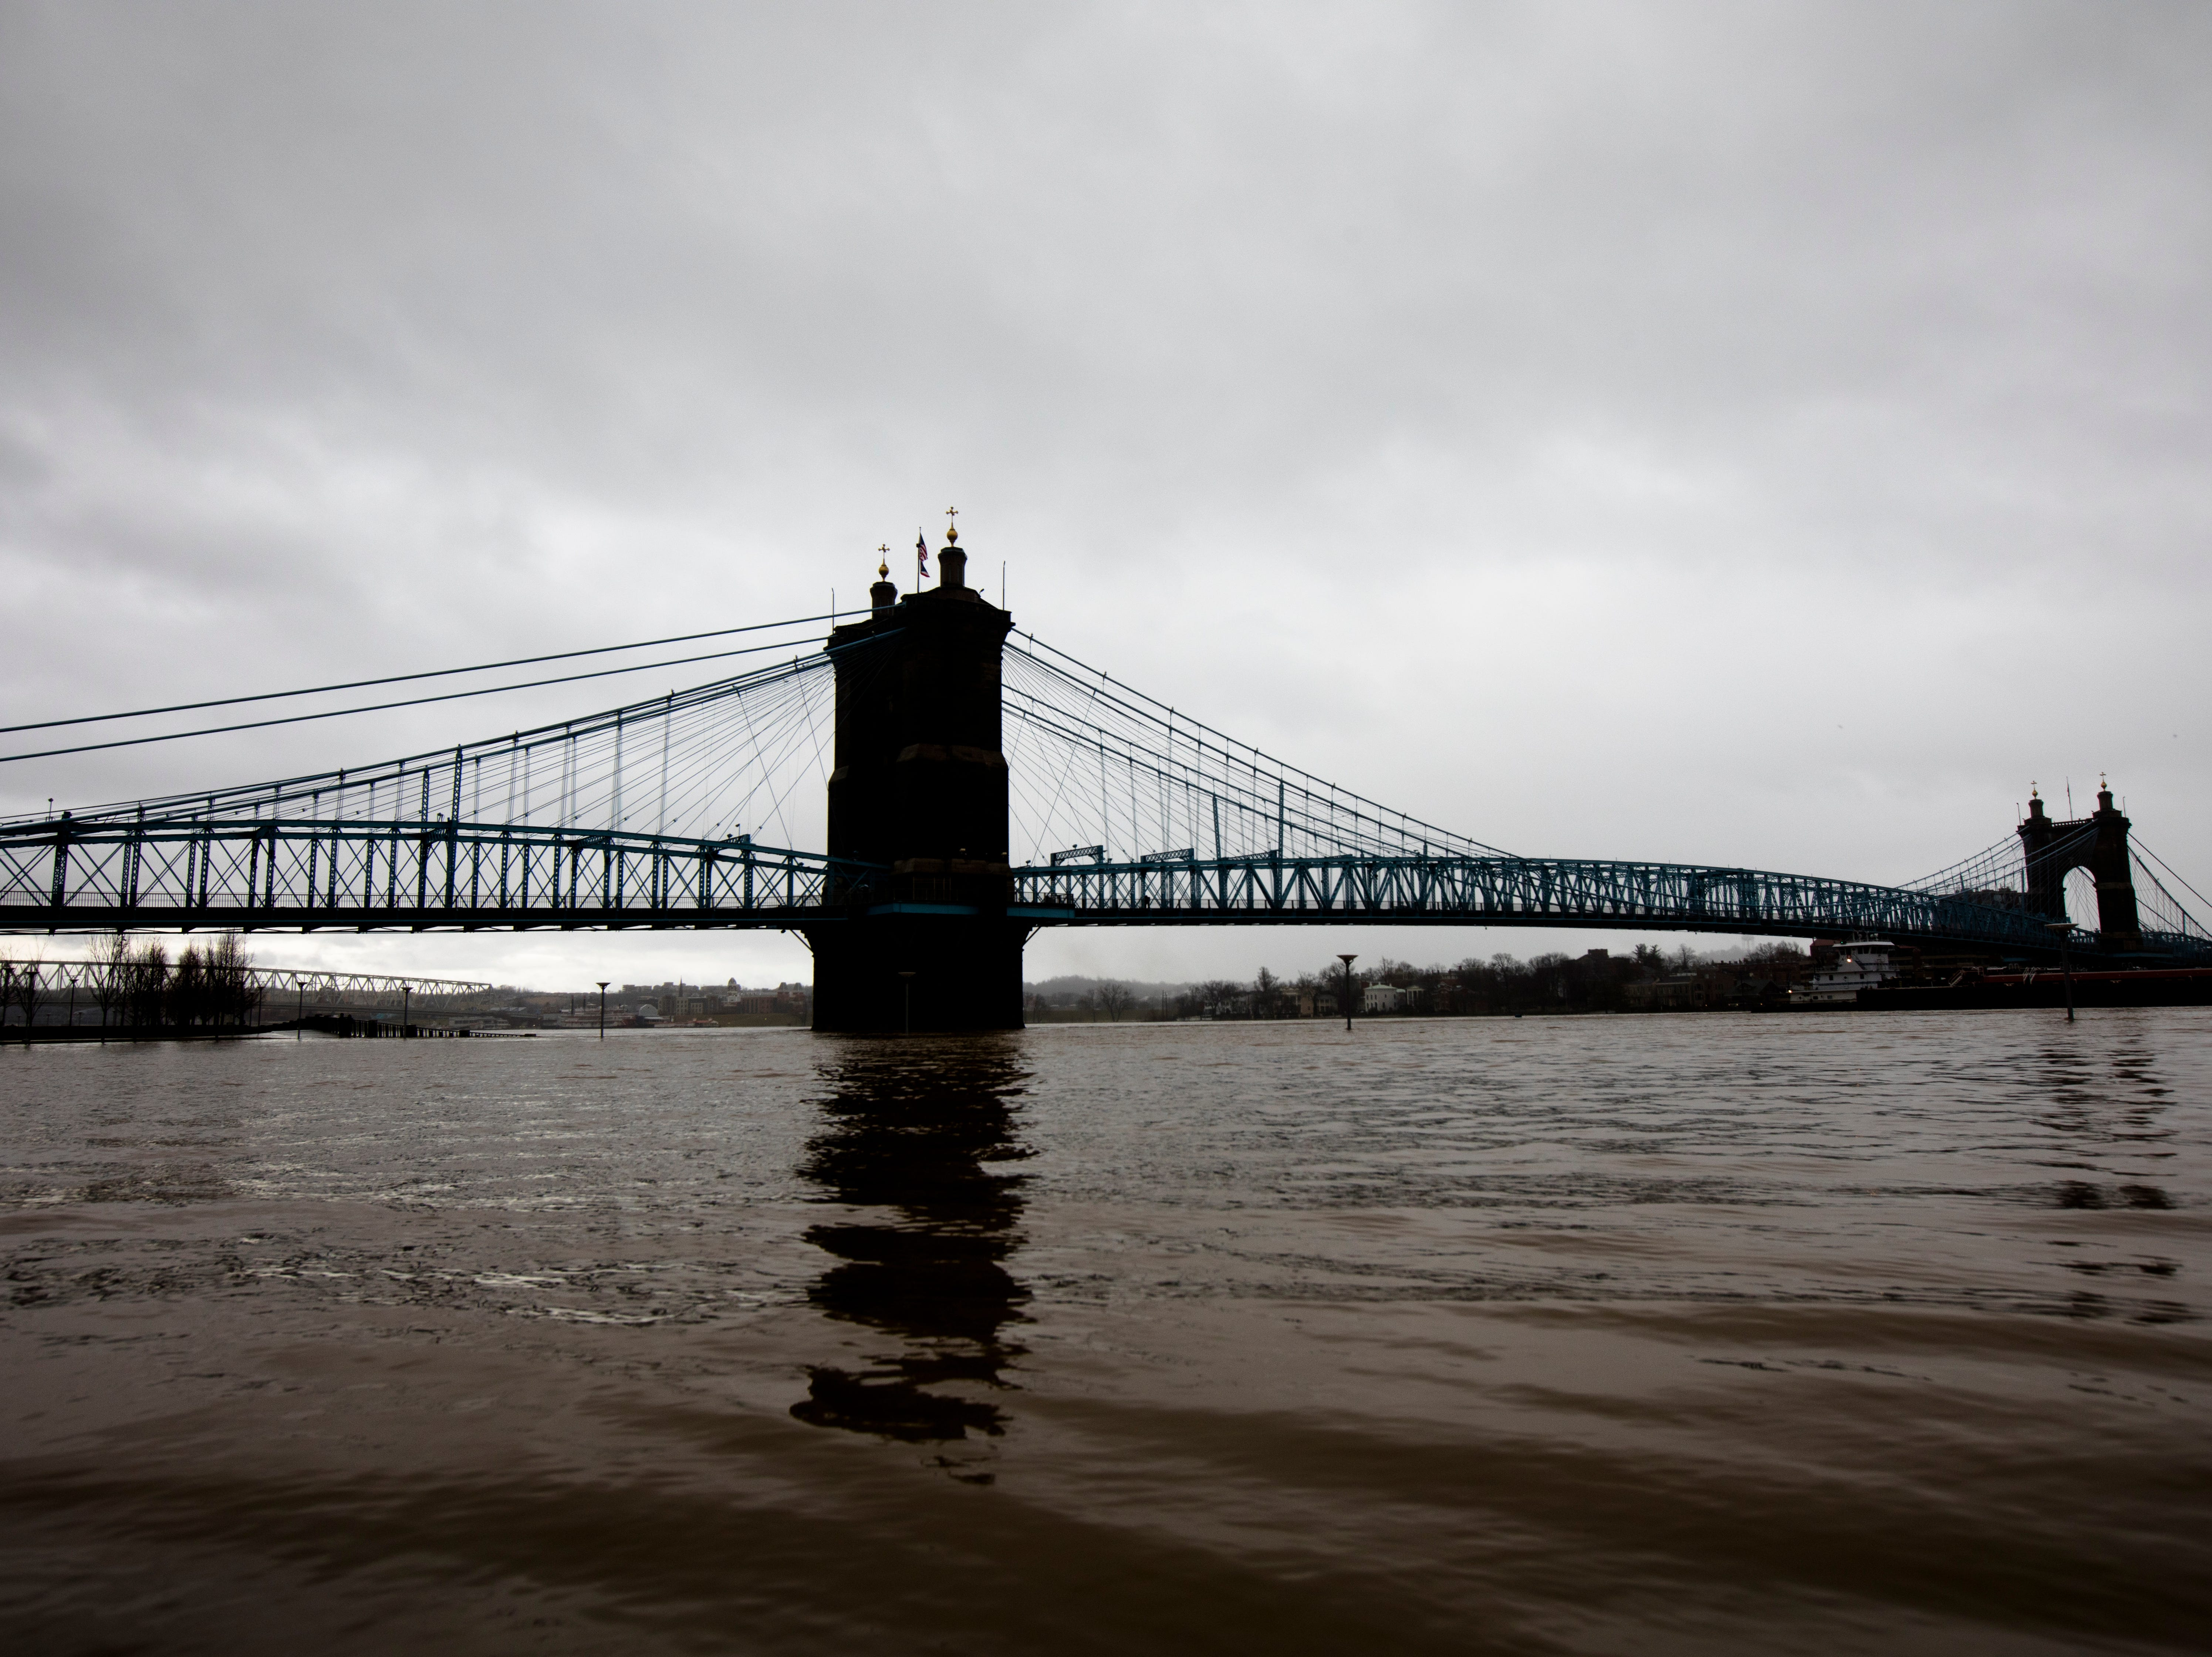 A view of the Roebling Bridge in Cincinnati on Tuesday, Feb. 12, 2019. The Ohio River is expected to crest at 56.3 feet at 1 a.m. Wednesday, Feb. 13.